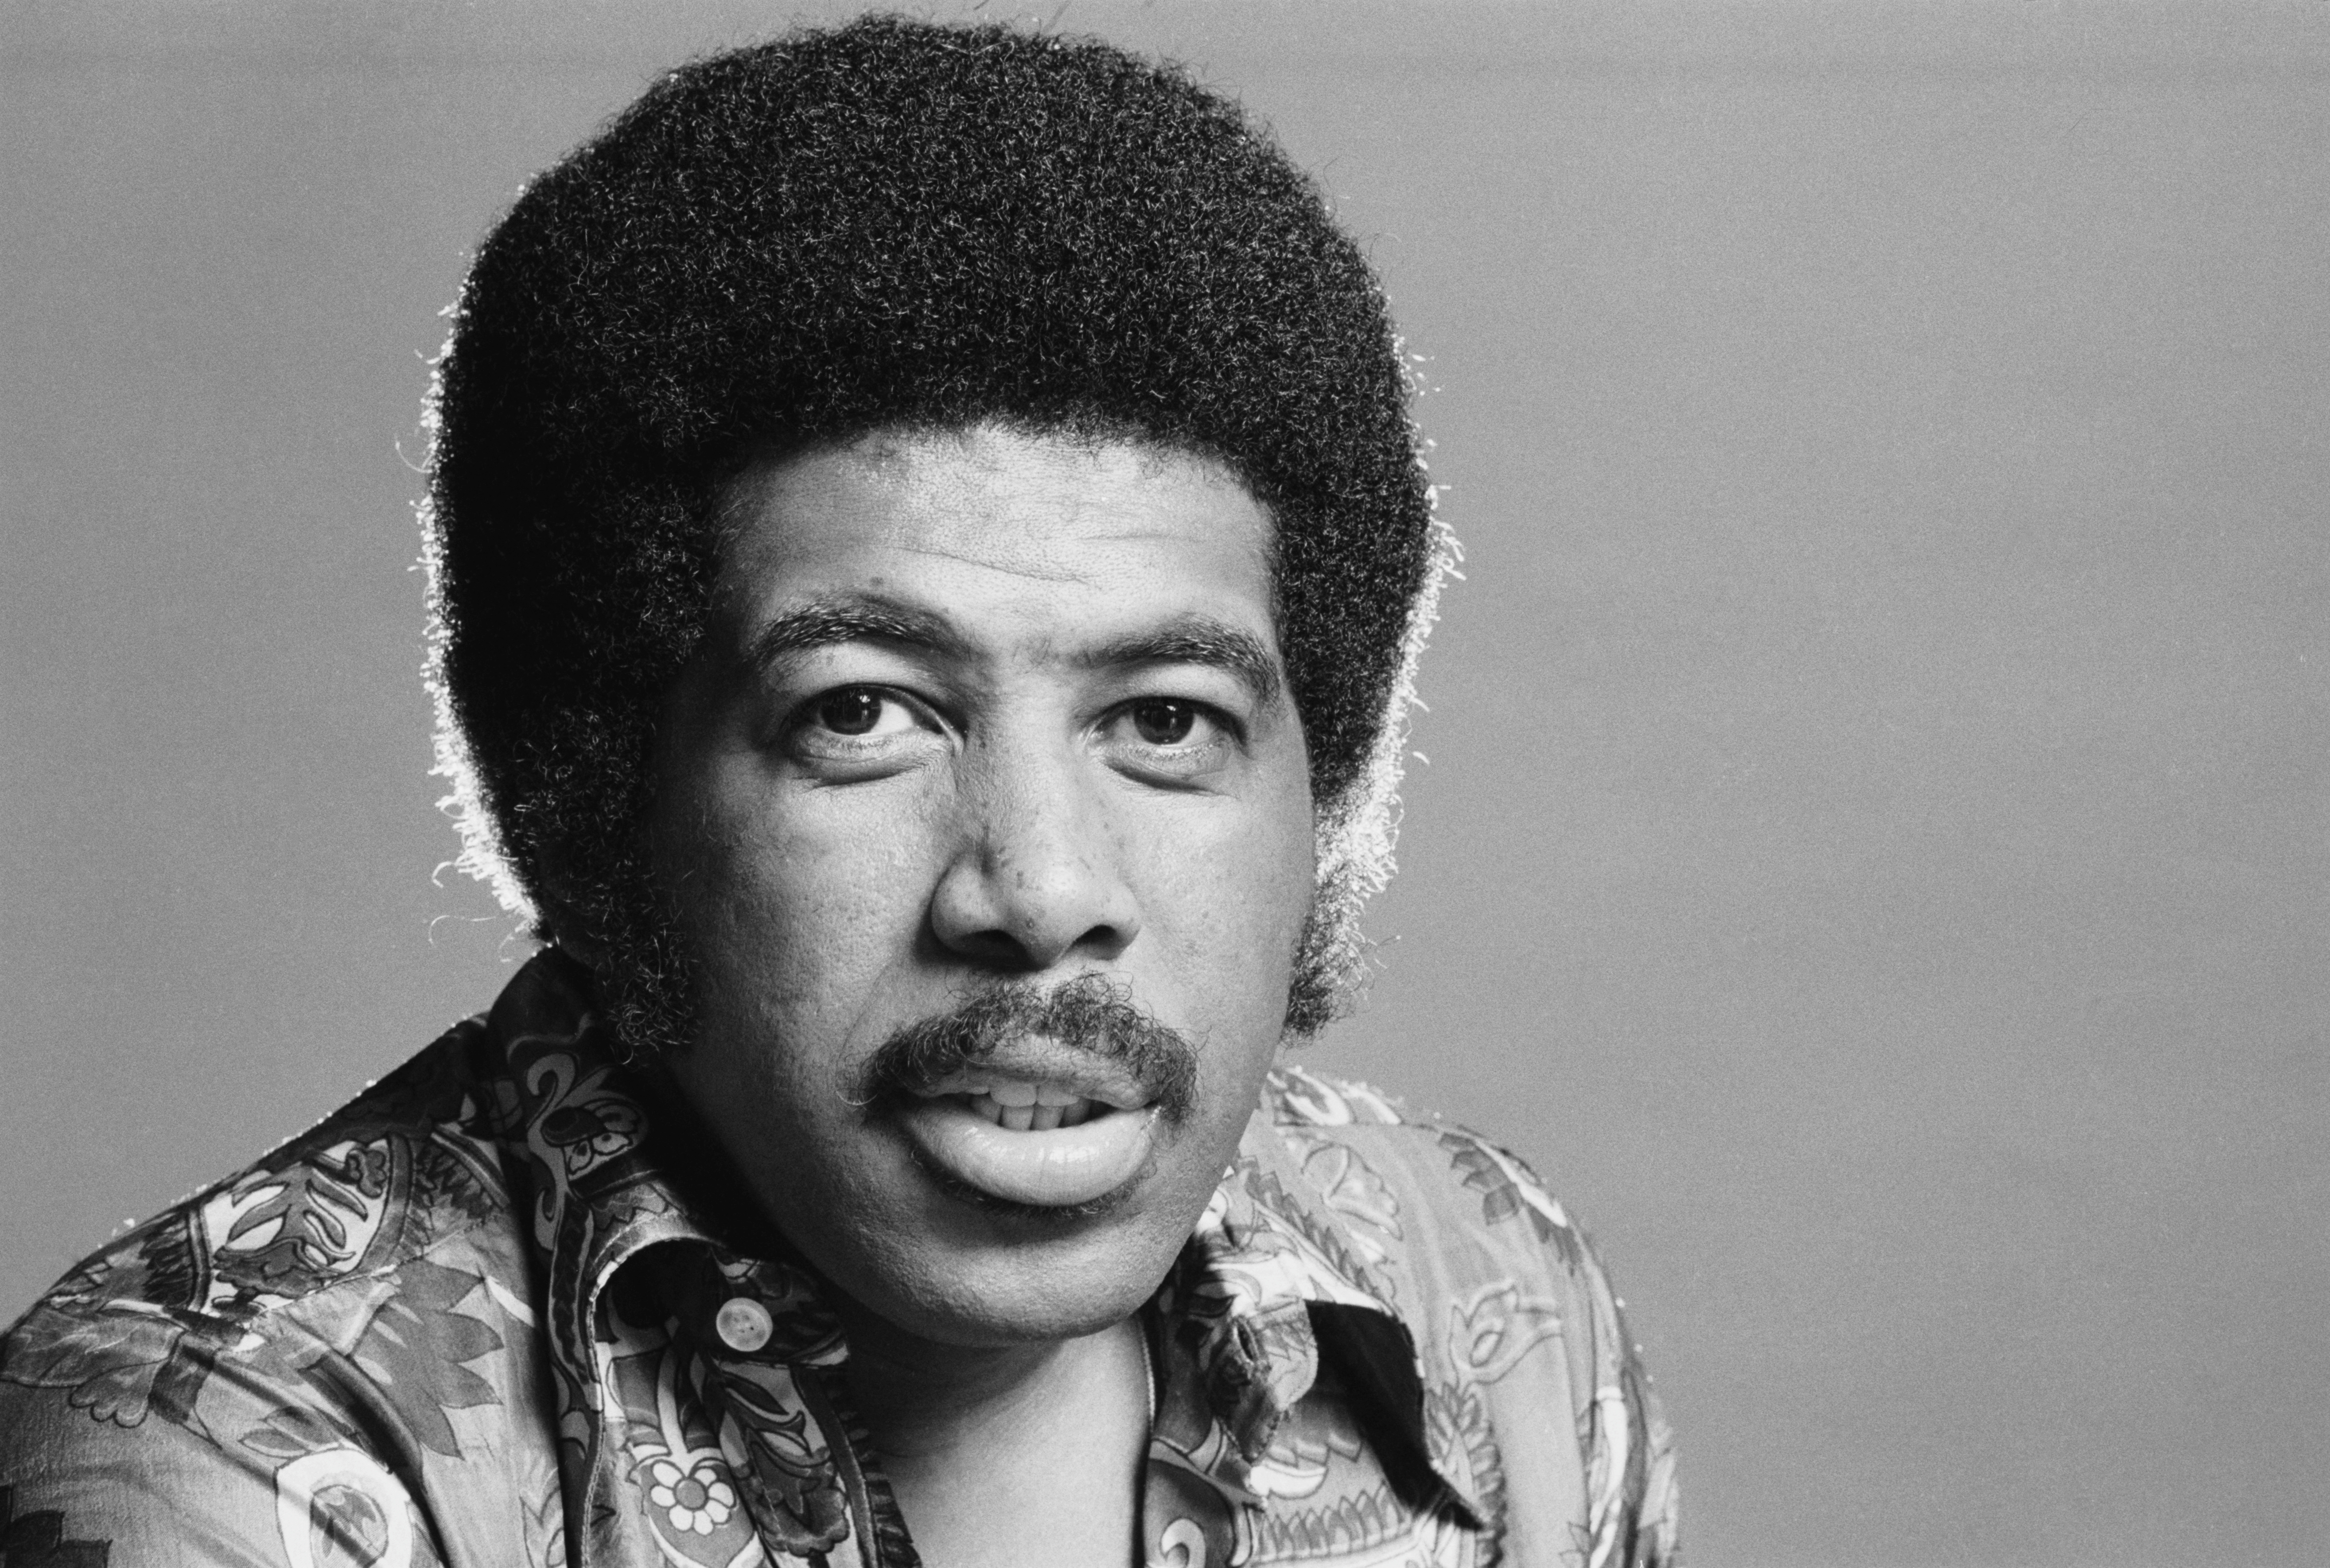 American soul and R&B singer-songwriter Ben E. King, 14th August 1974. (Photo by Michael Putland/Getty Images)